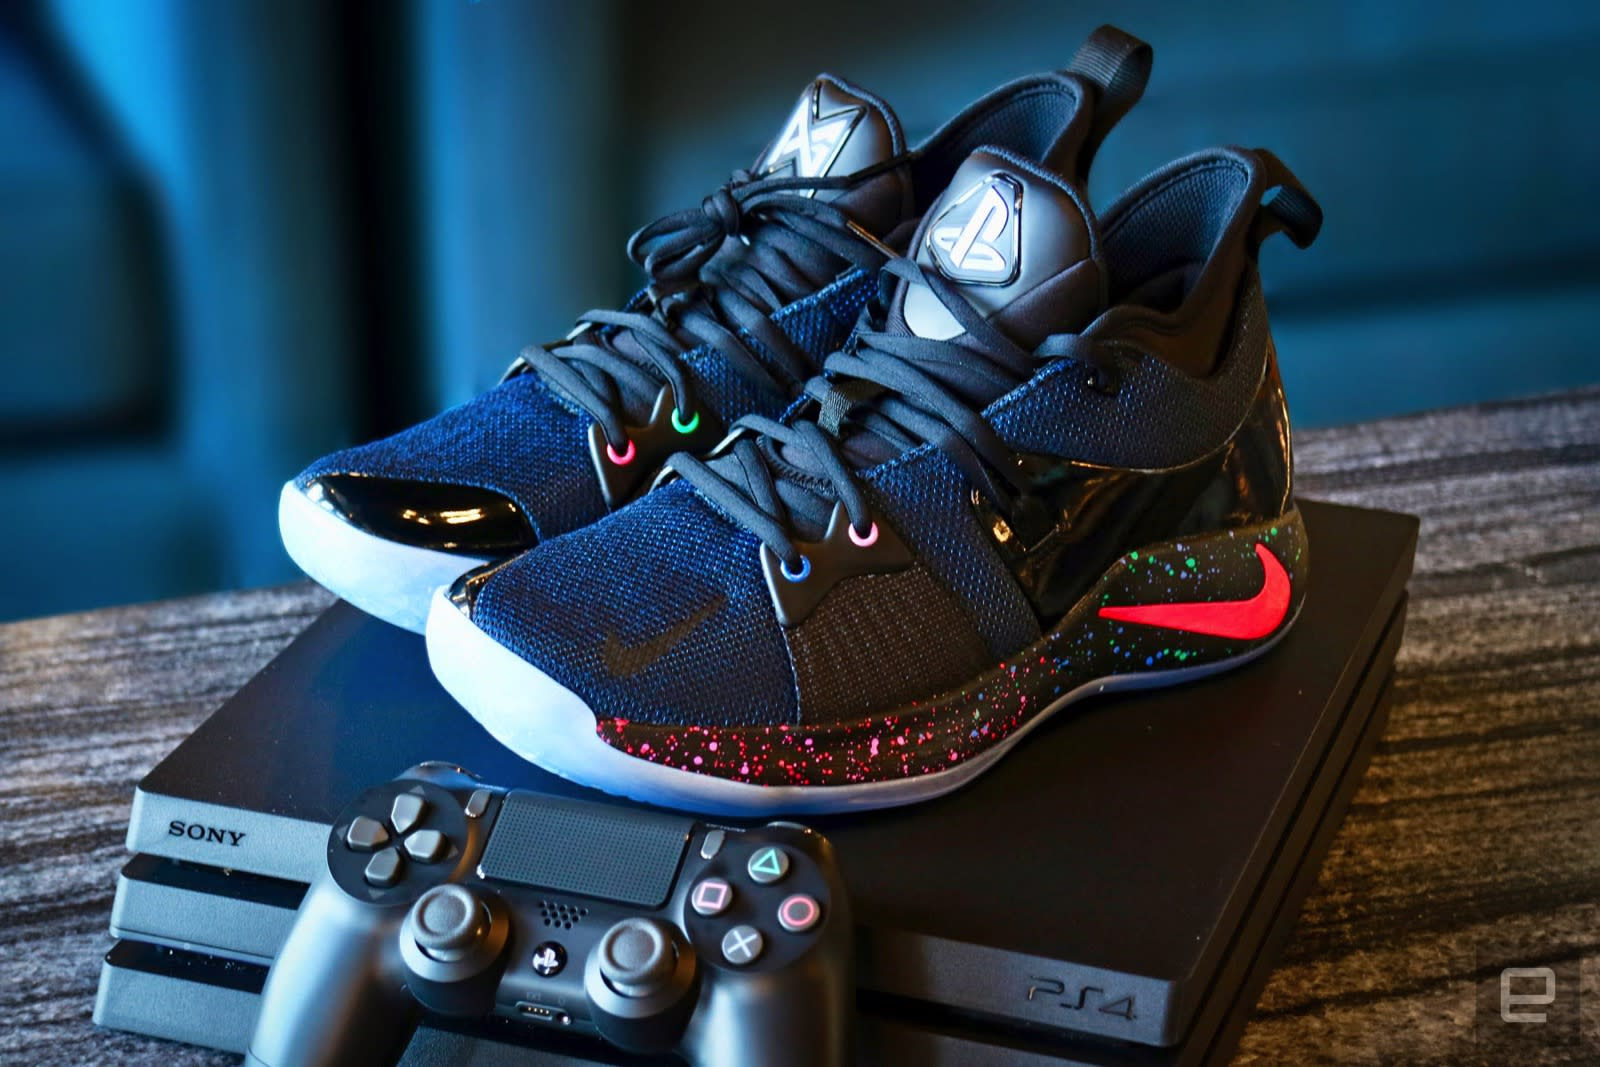 quality design 9f3ef c7d07 Nike PG 2 PlayStation 4 Basketball Shoes Price & Review in ...